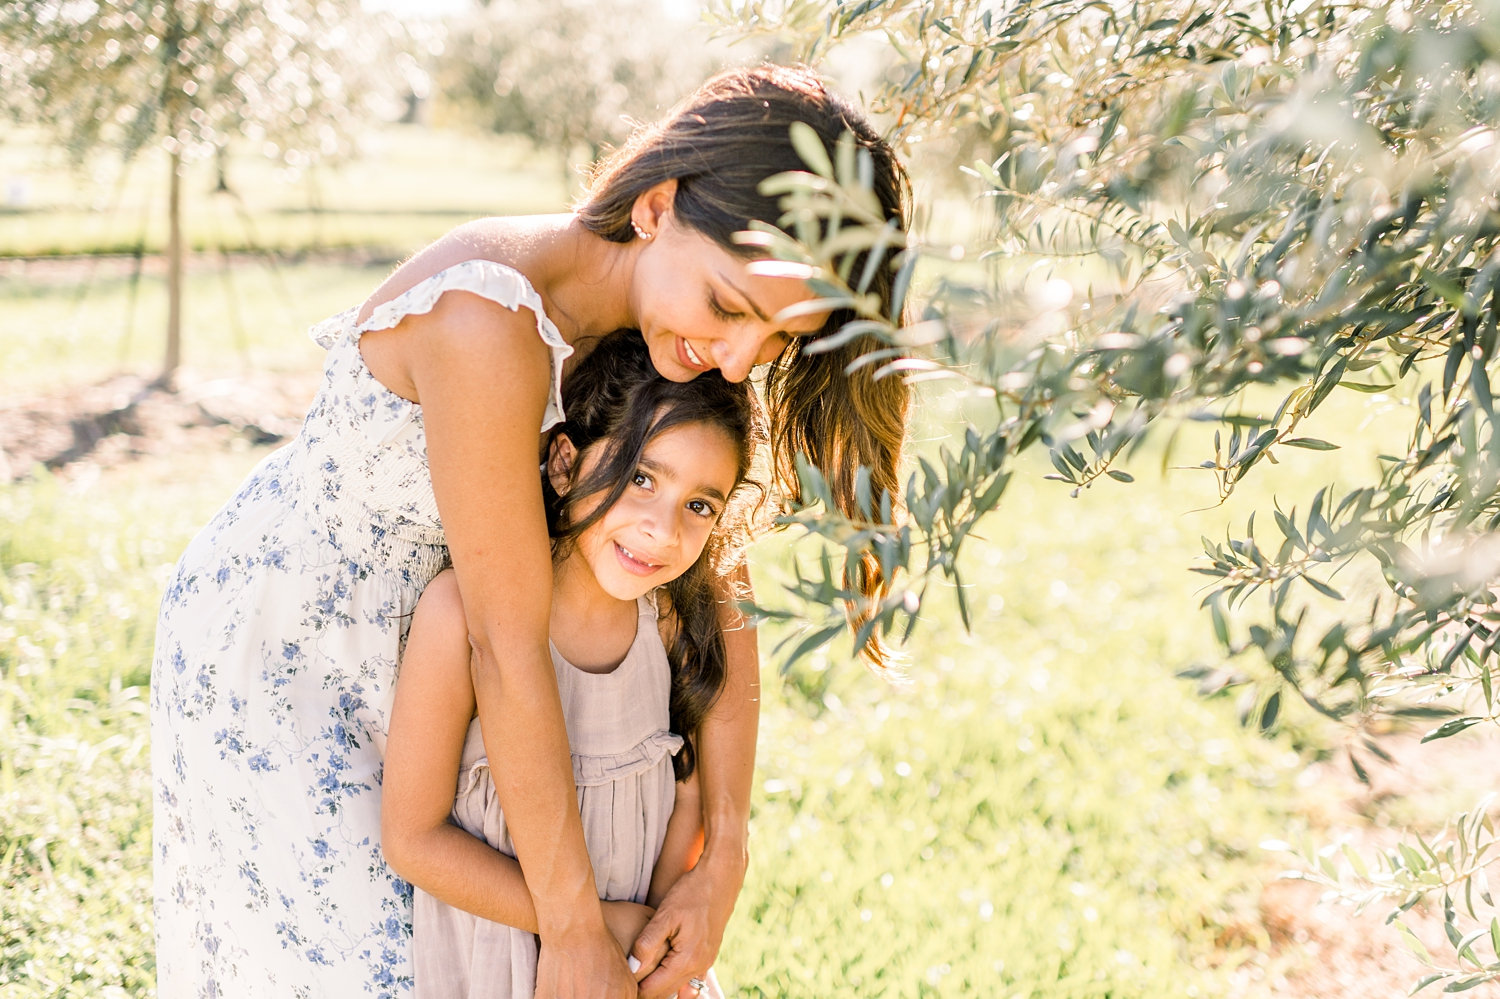 mother embracing daughter, girl looking at camera, olive tree, Florida, Ryaphotos